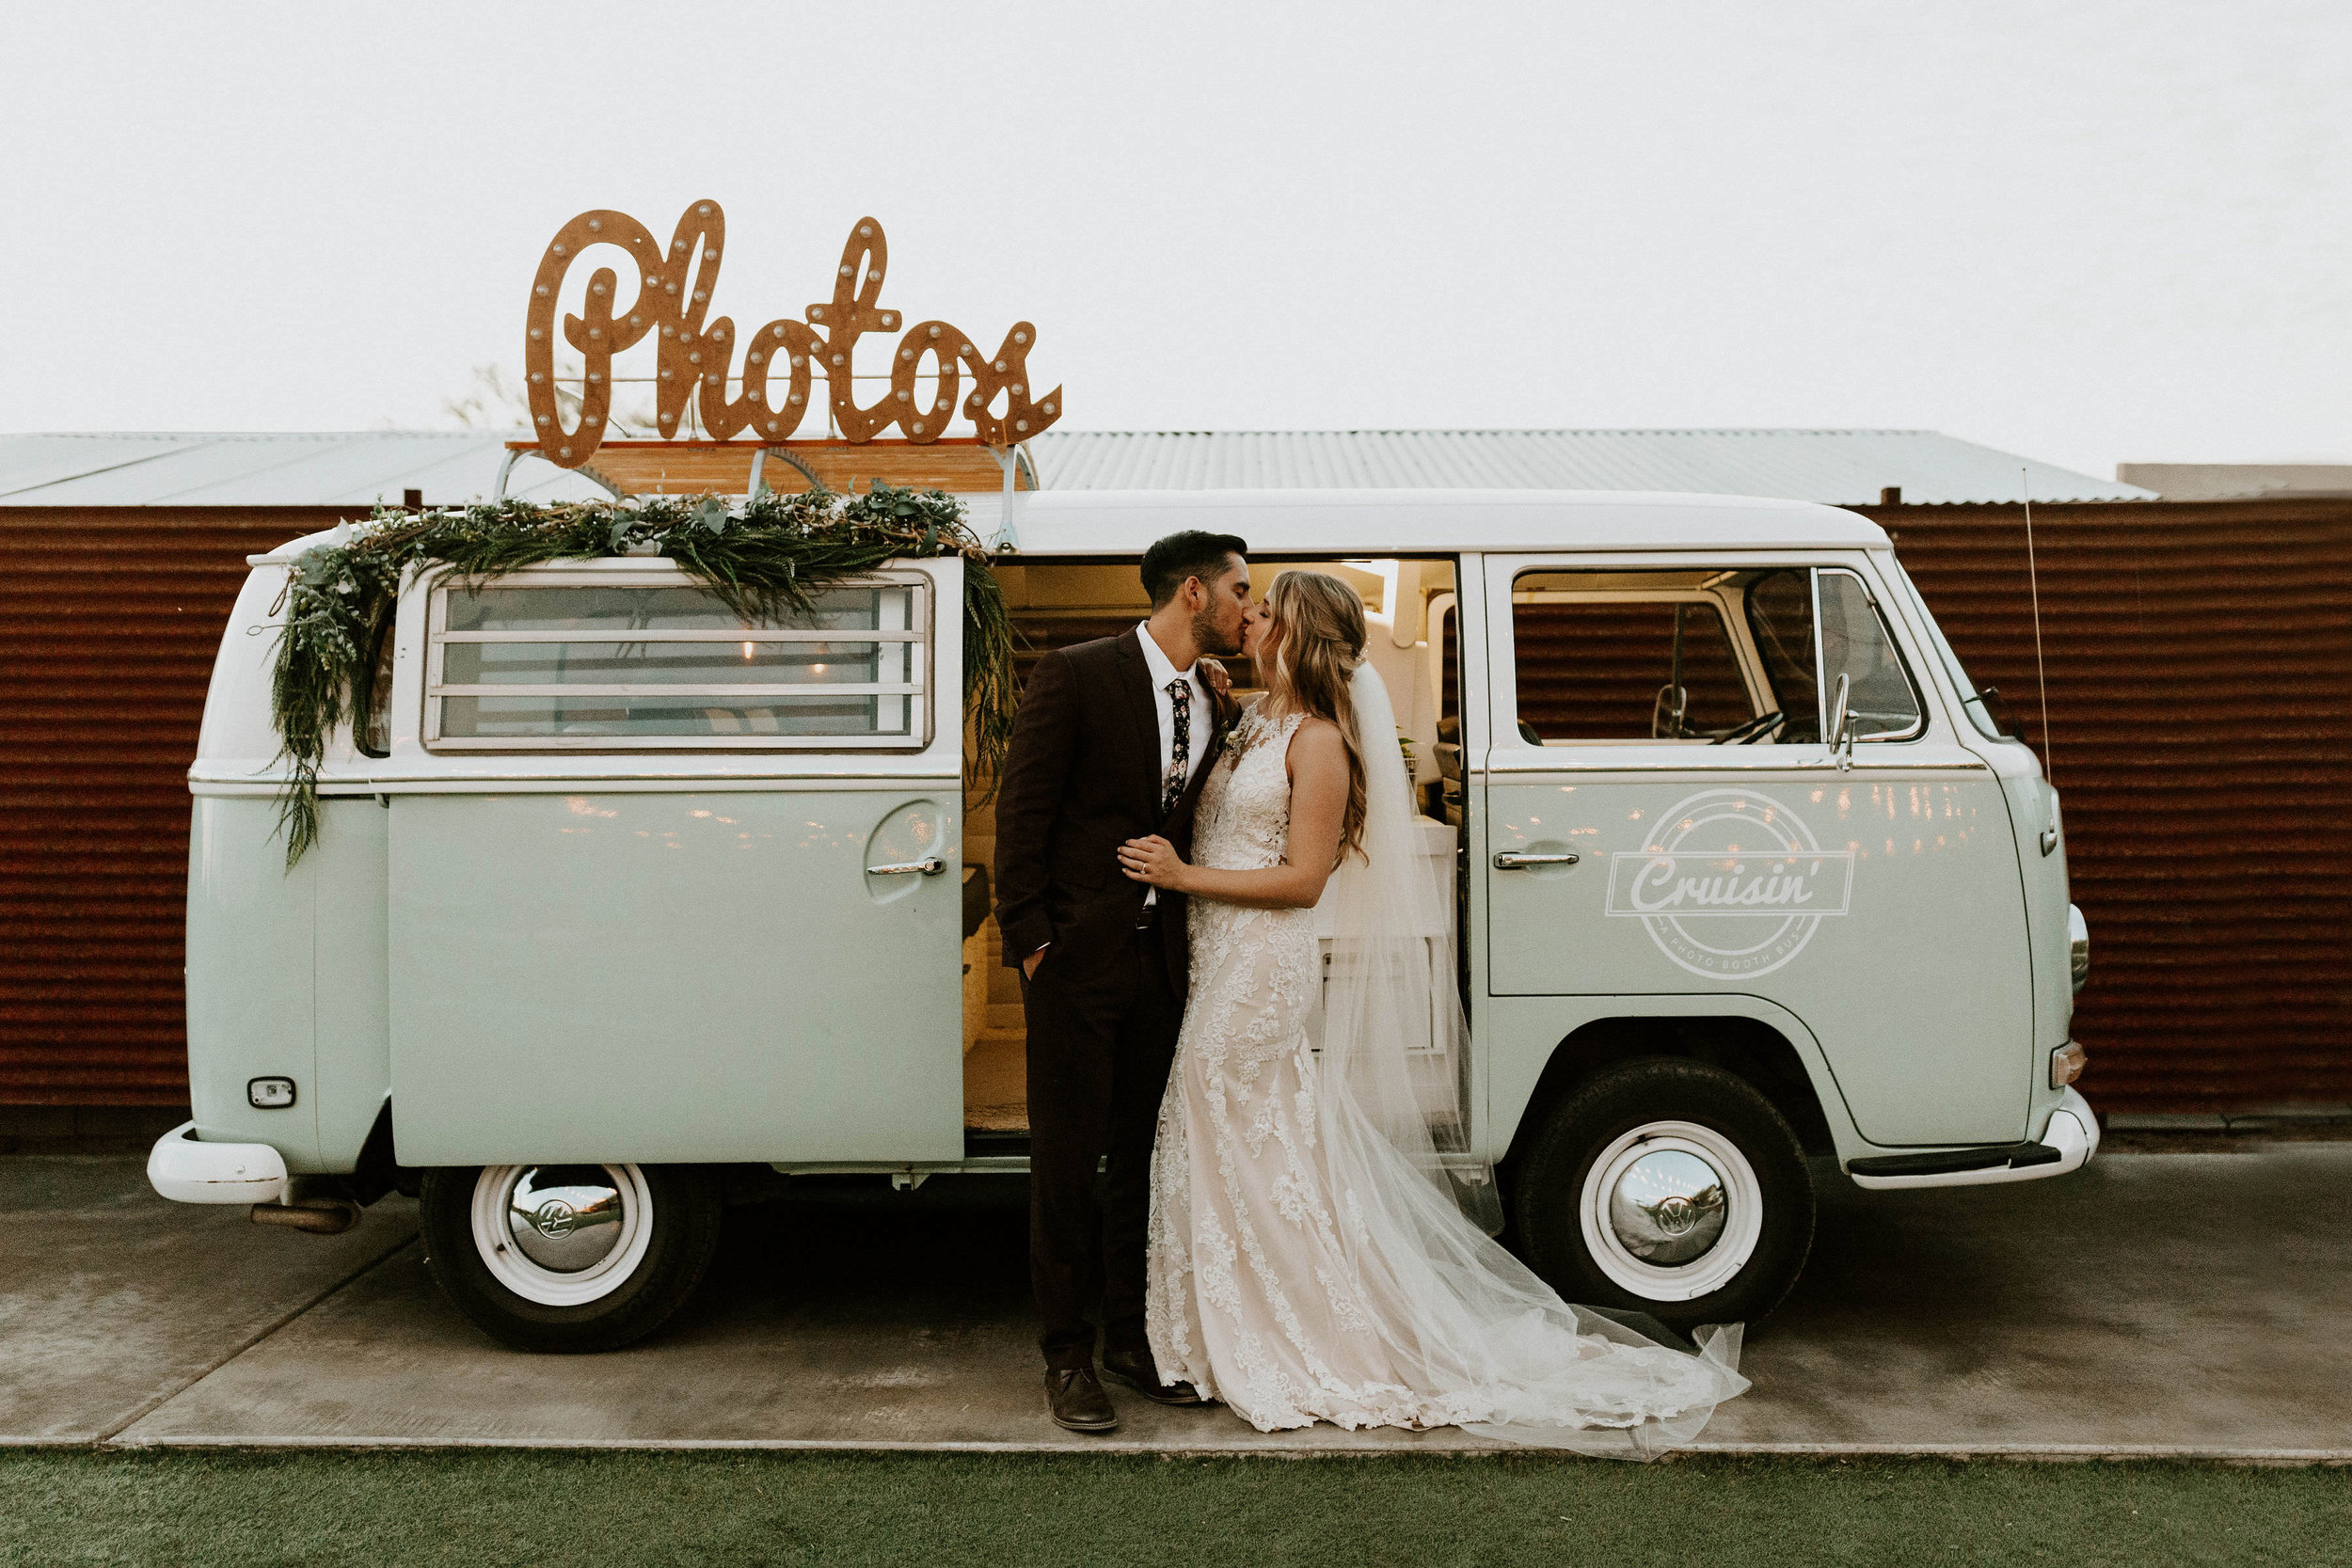 Photo Booth VW Bus at Paseo Wedding Venue